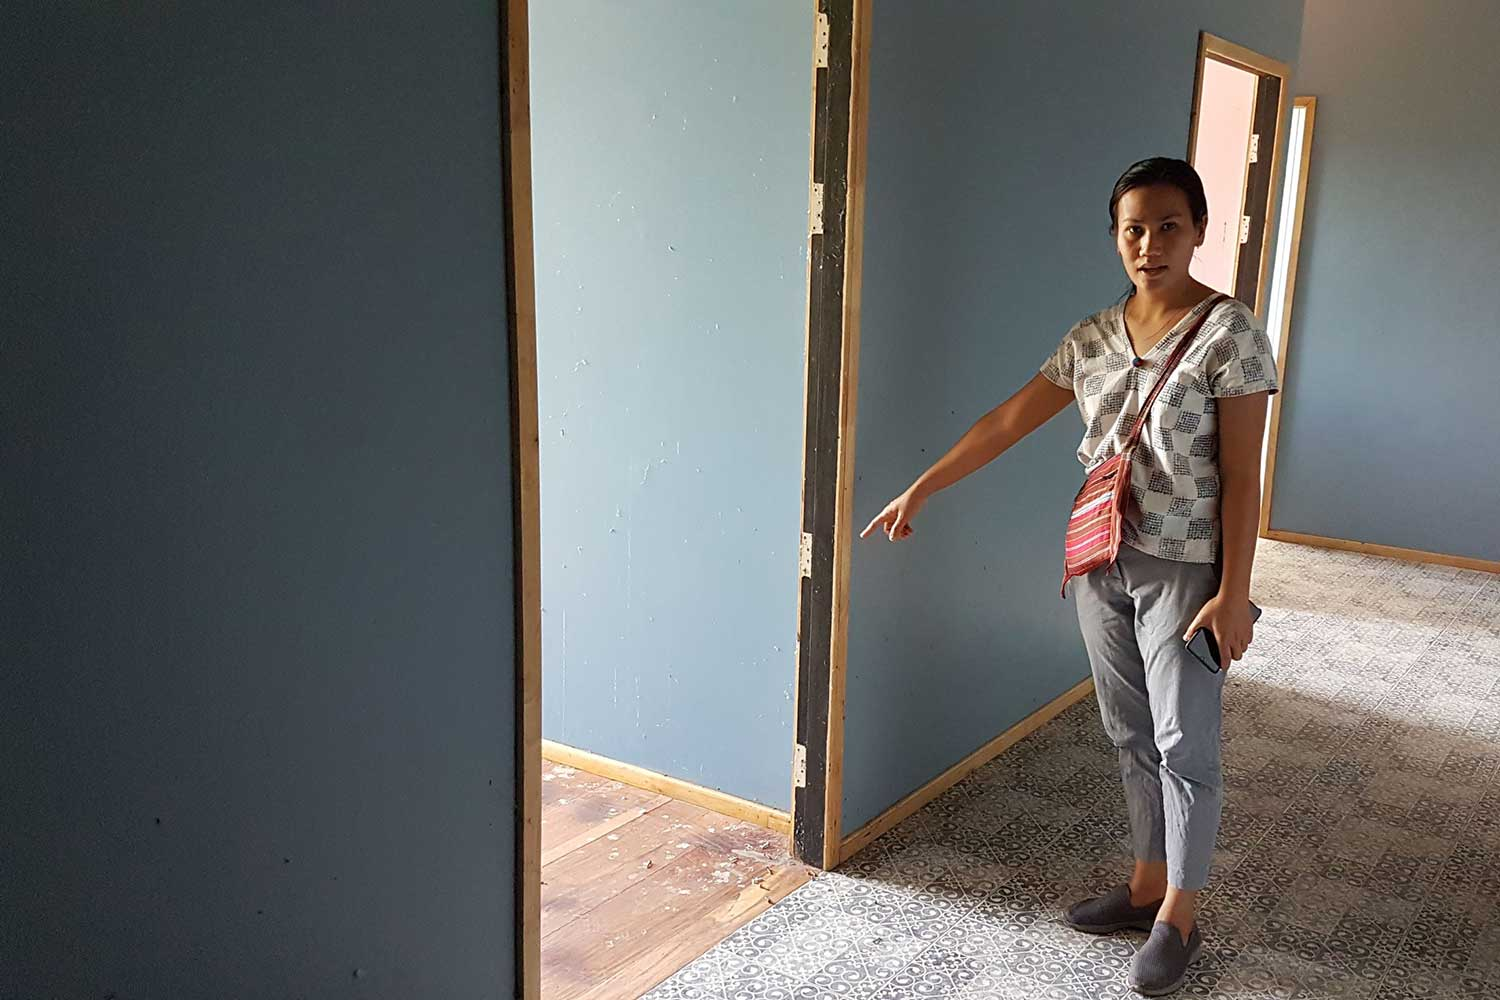 Phakamas In-tap shows where burglars removed two of nine wooden doors from her house in Bang Rakham district of Phitsanulok. (Photo by Chinawat Singha)